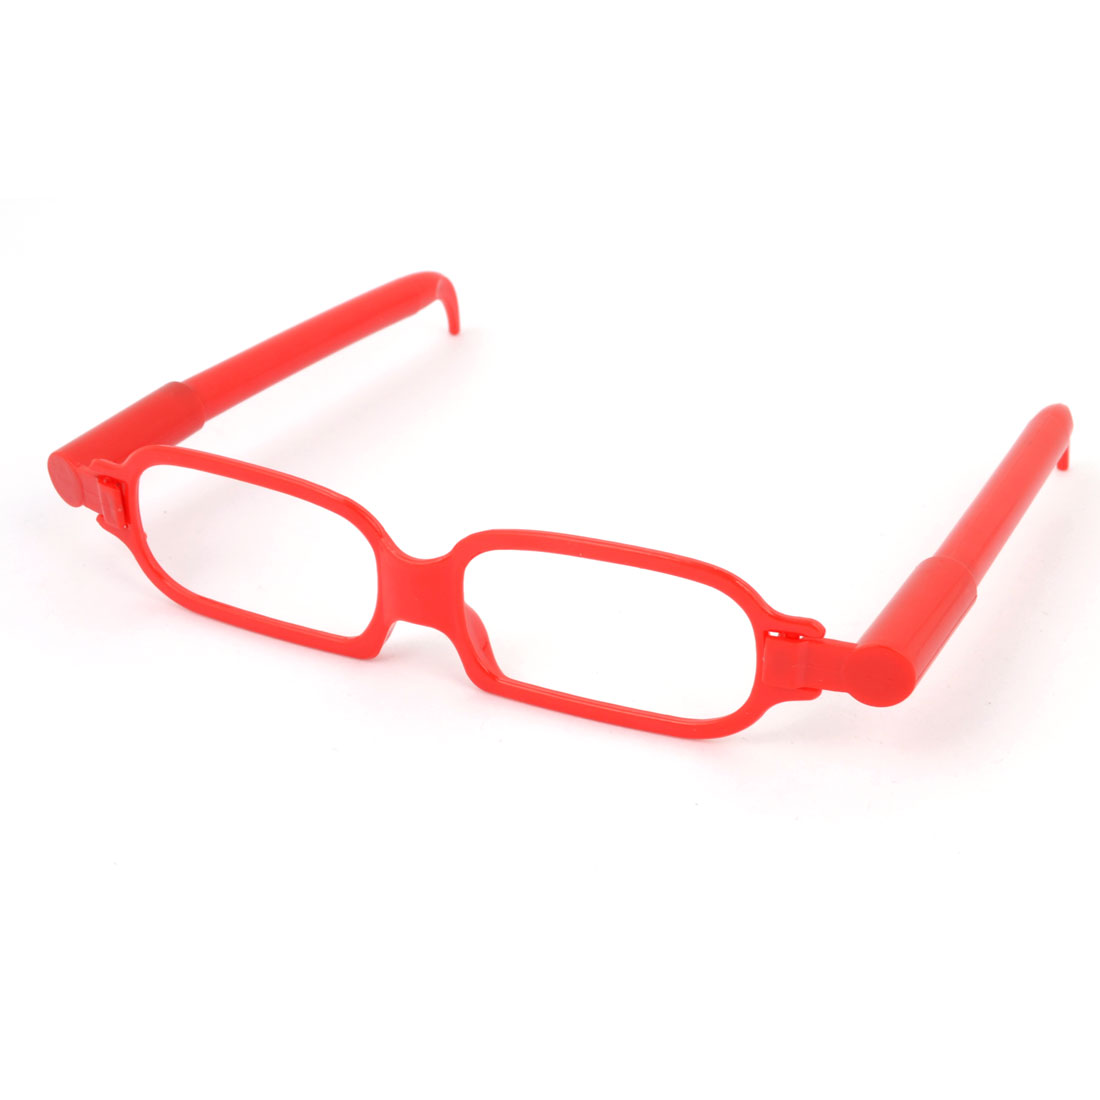 Plastic Single Bridge Full Rim Glasses Frame Design Ball Point Pen Red